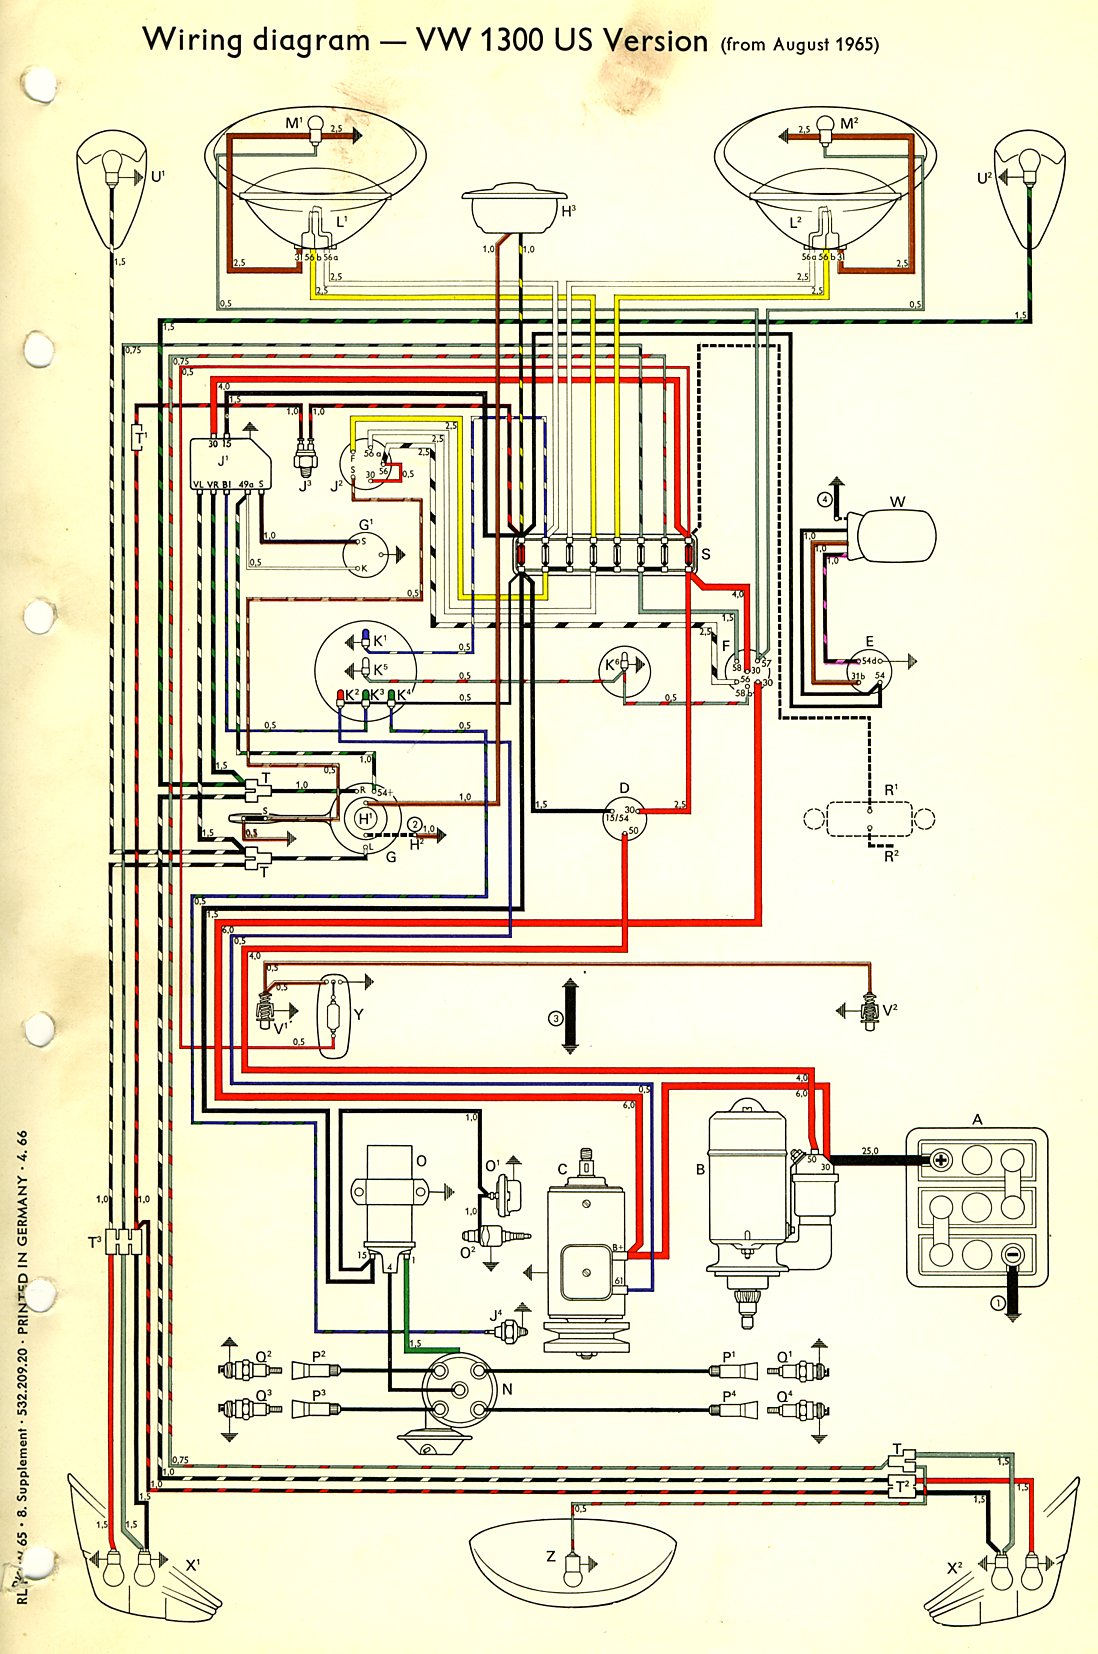 1967 vw bug wiring harness wiring diagram data 1973 VW Wiring Diagram thesamba com type 1 wiring diagrams 1967 vw bug bumper 1967 vw bug wiring harness